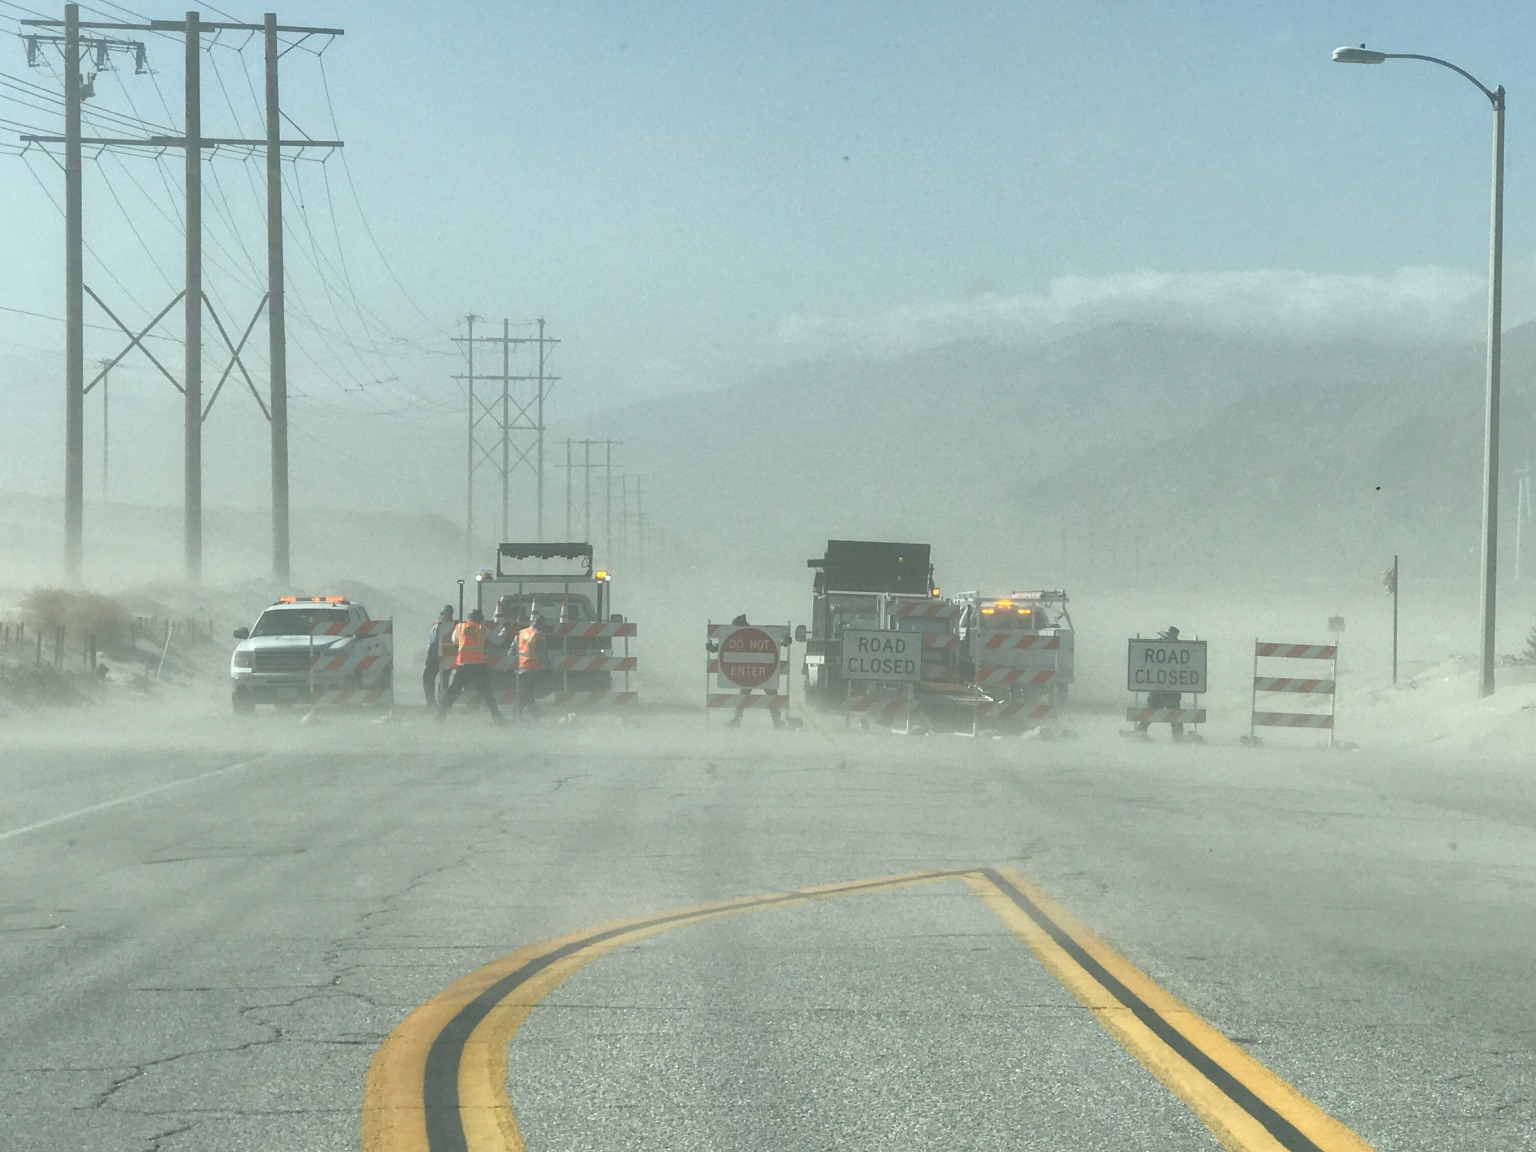 Sand Takes Over Palm Springs Roadways, Resulting in Closures